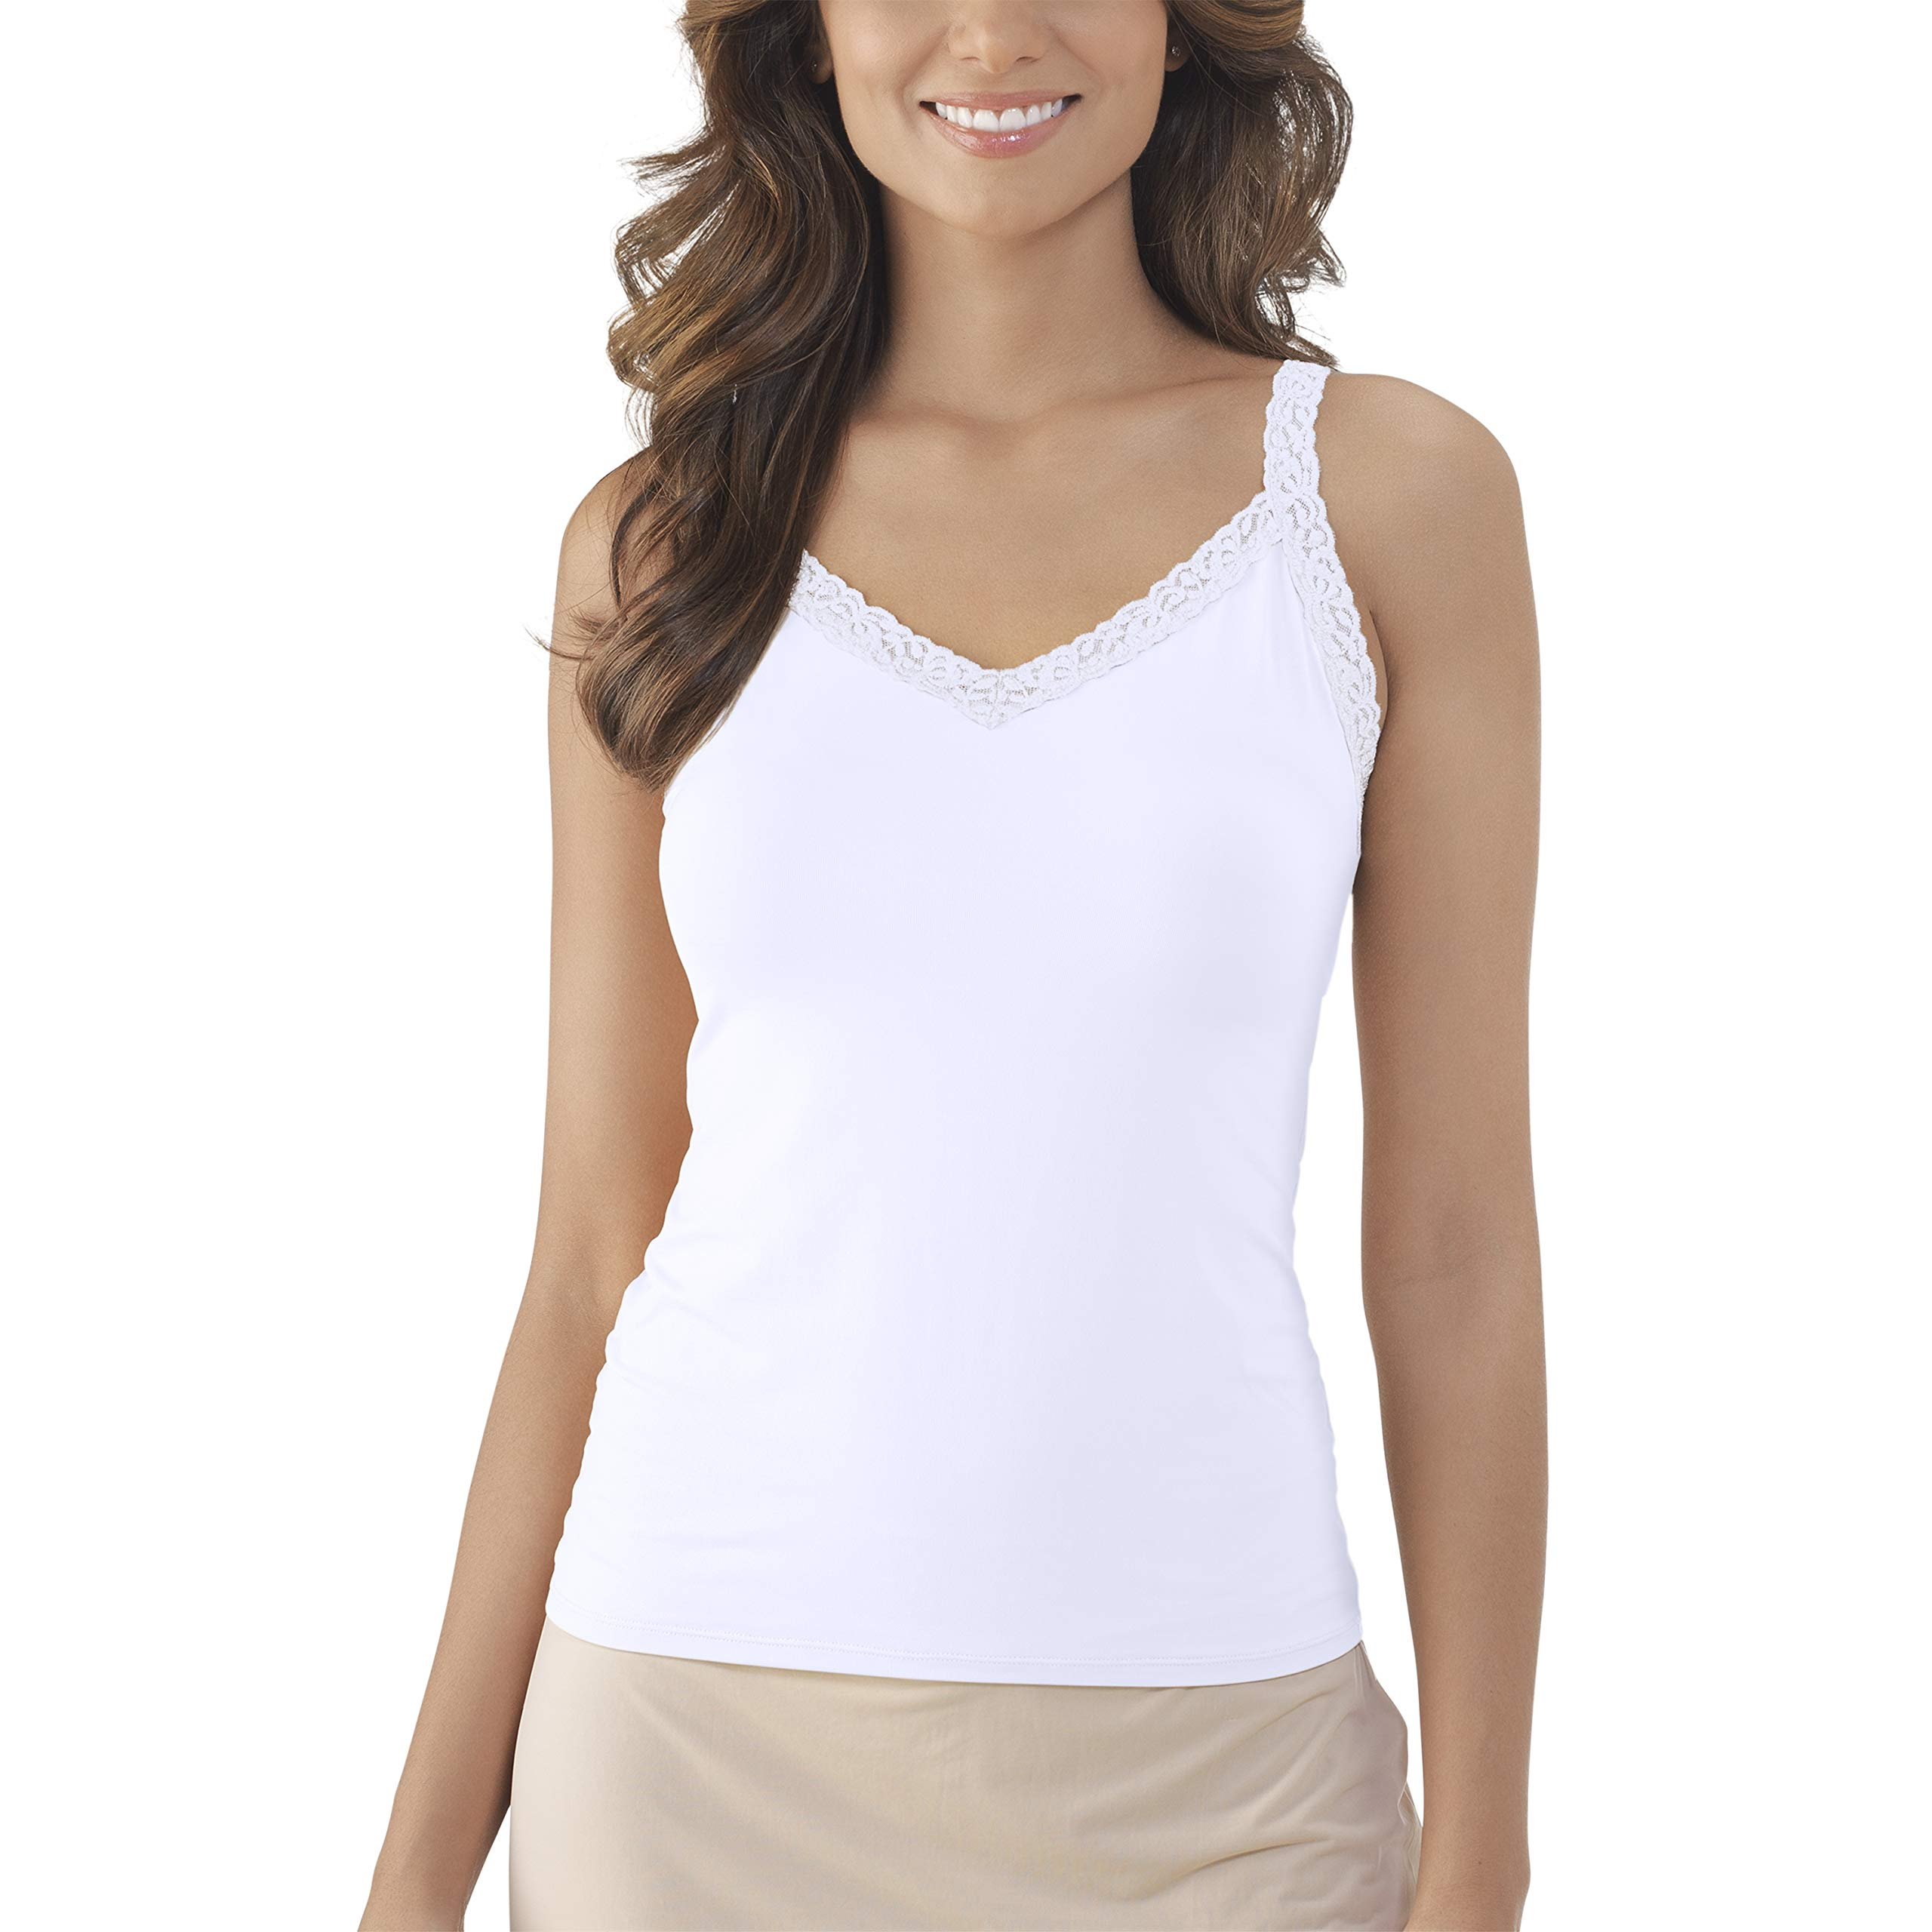 Vanity Fair Women's Tops for Layering (Camisole & Tank Tops)